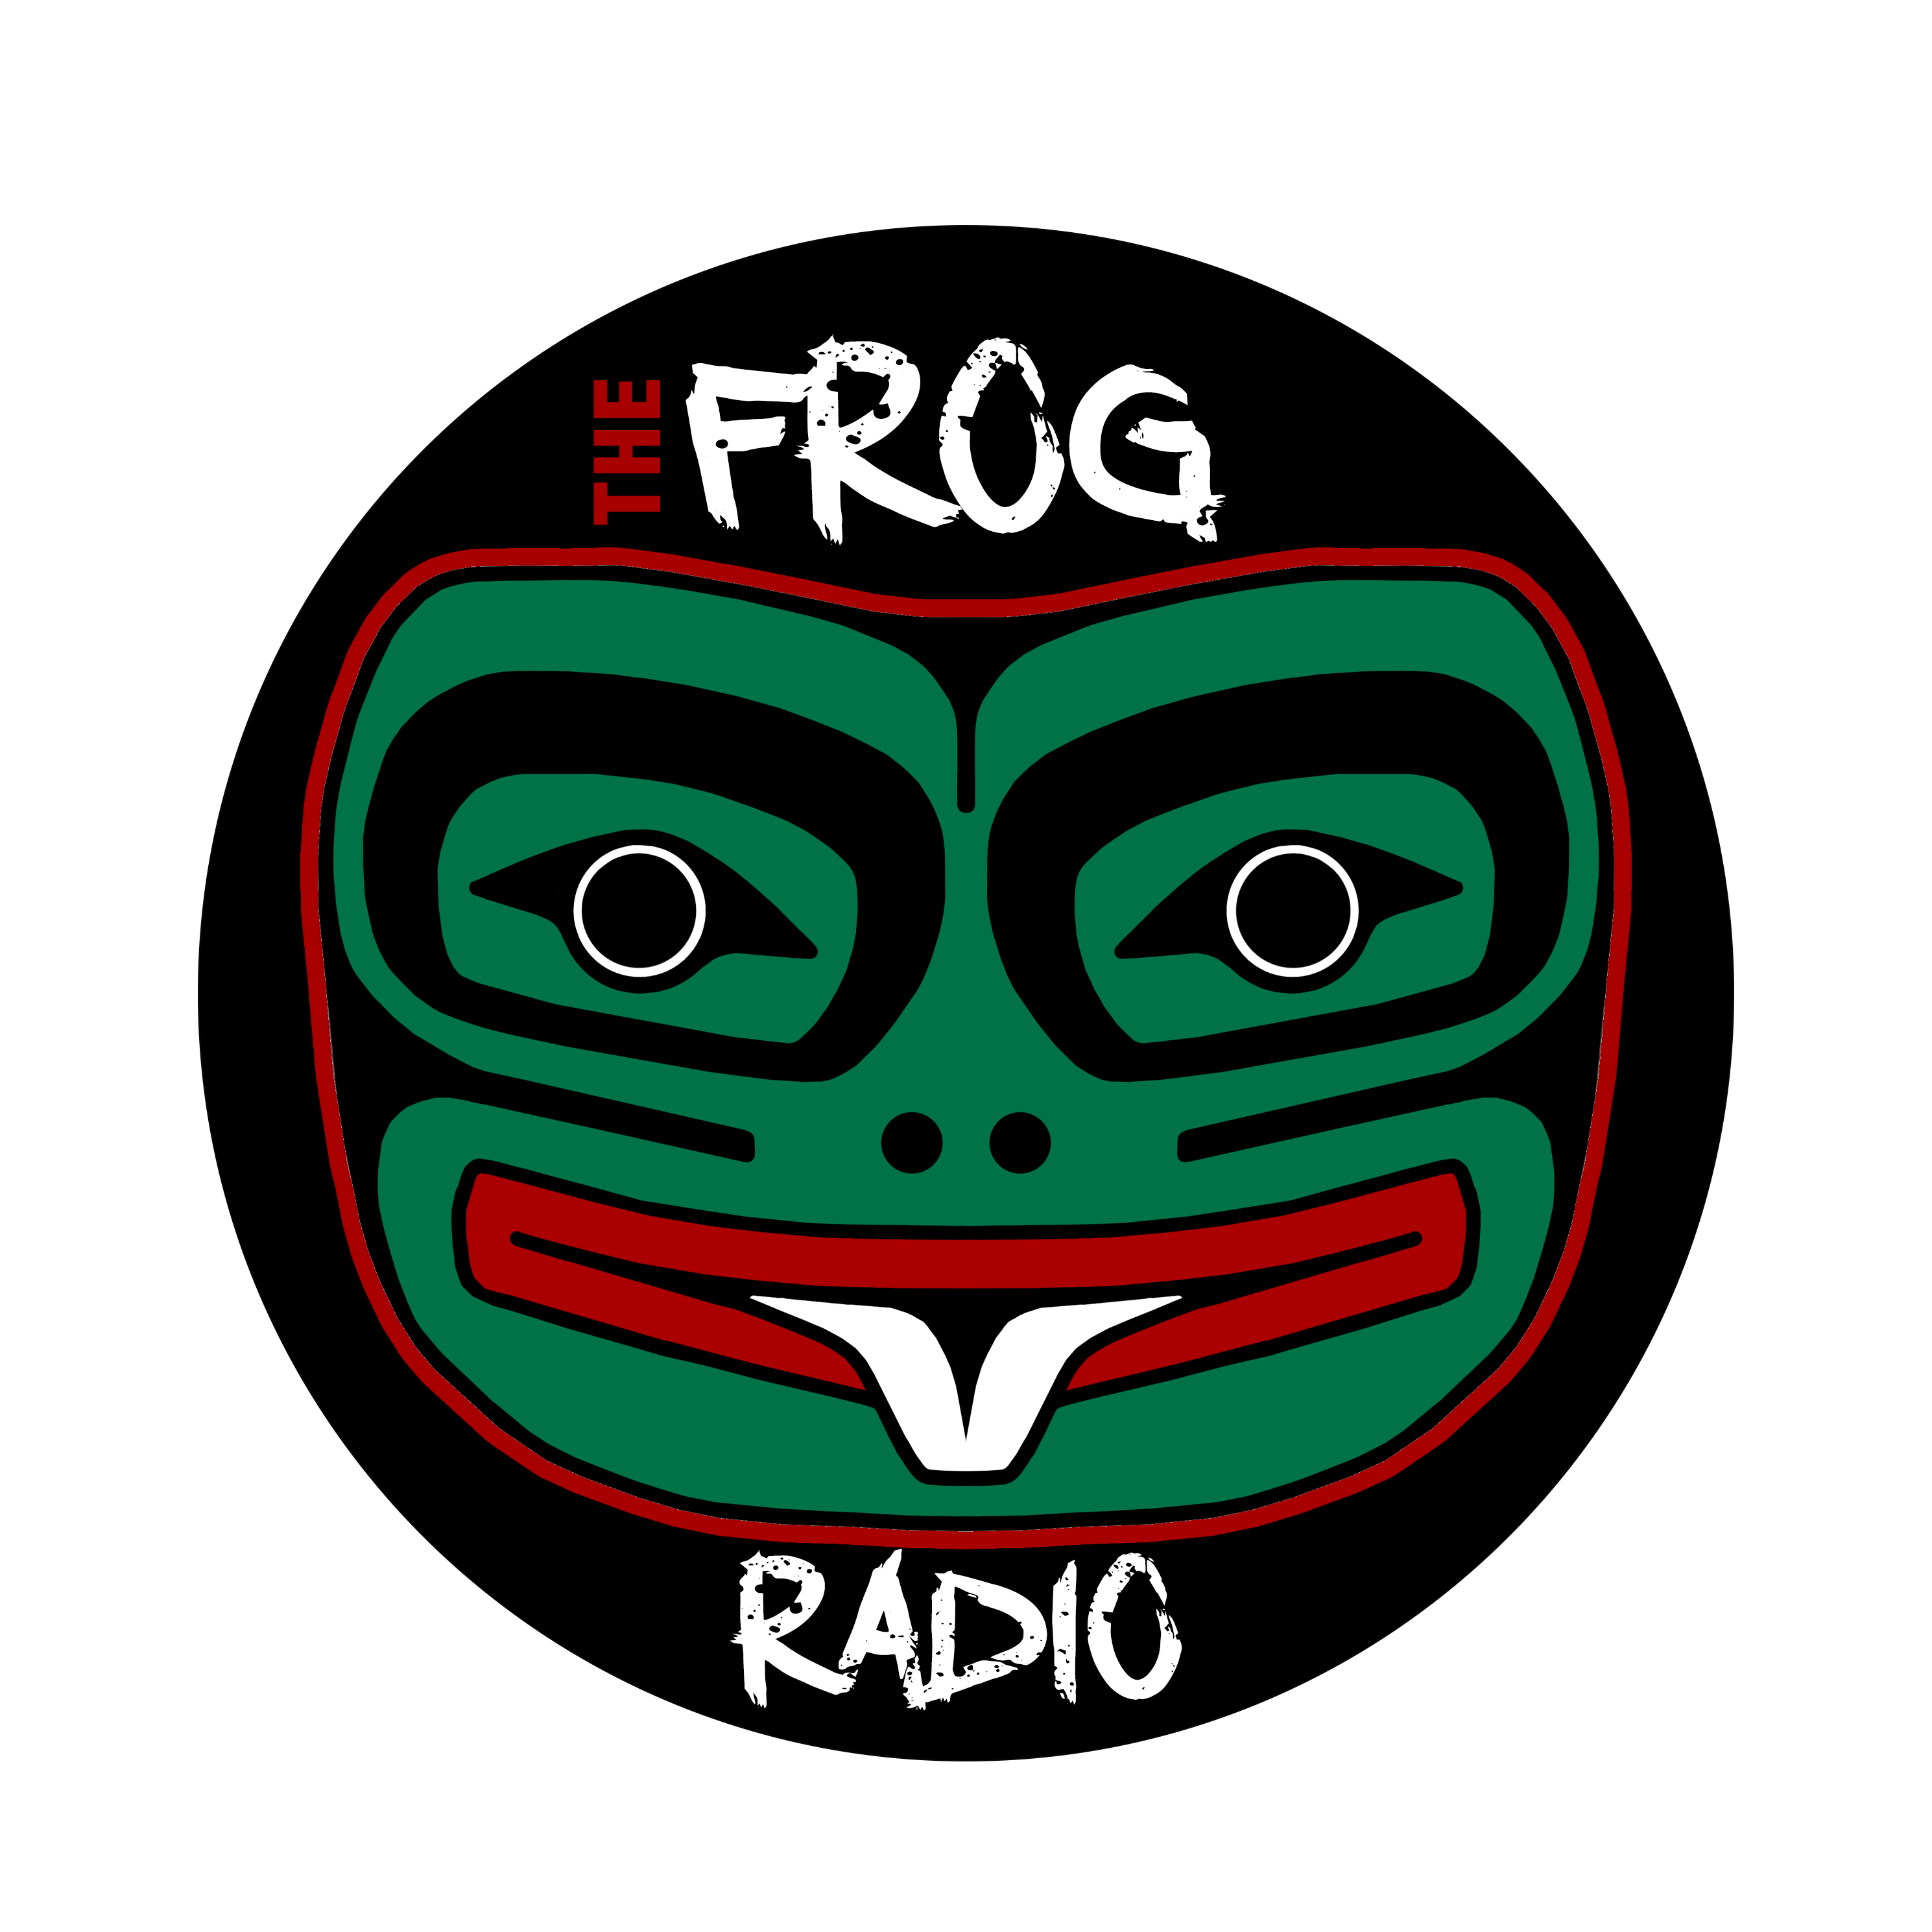 Art for You're listening to by The Frog Radio